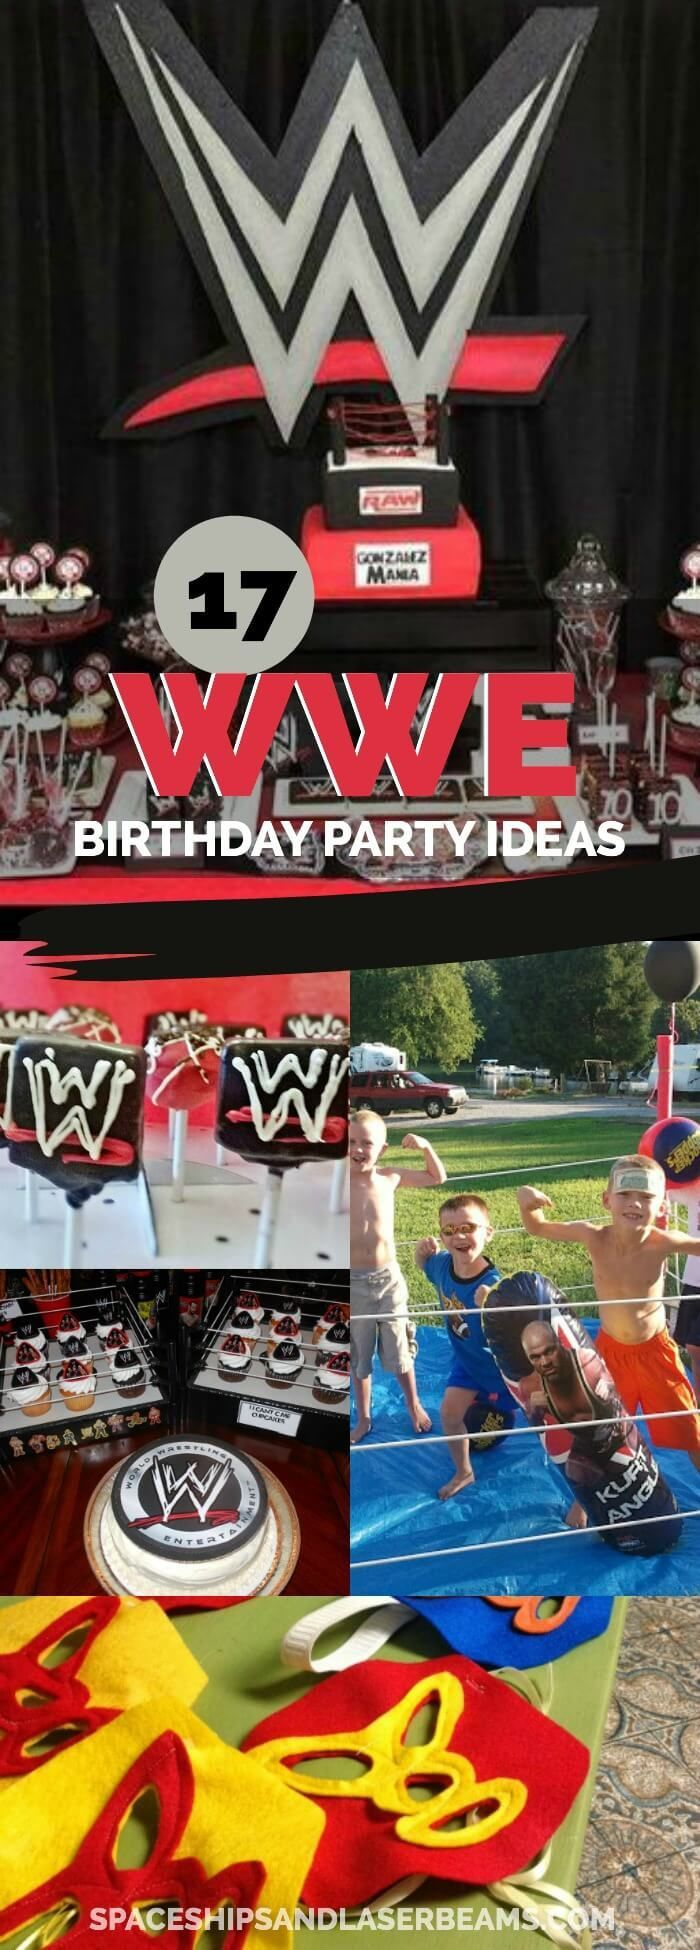 17 Wild WWE Party Ideas via /spaceshipslb/